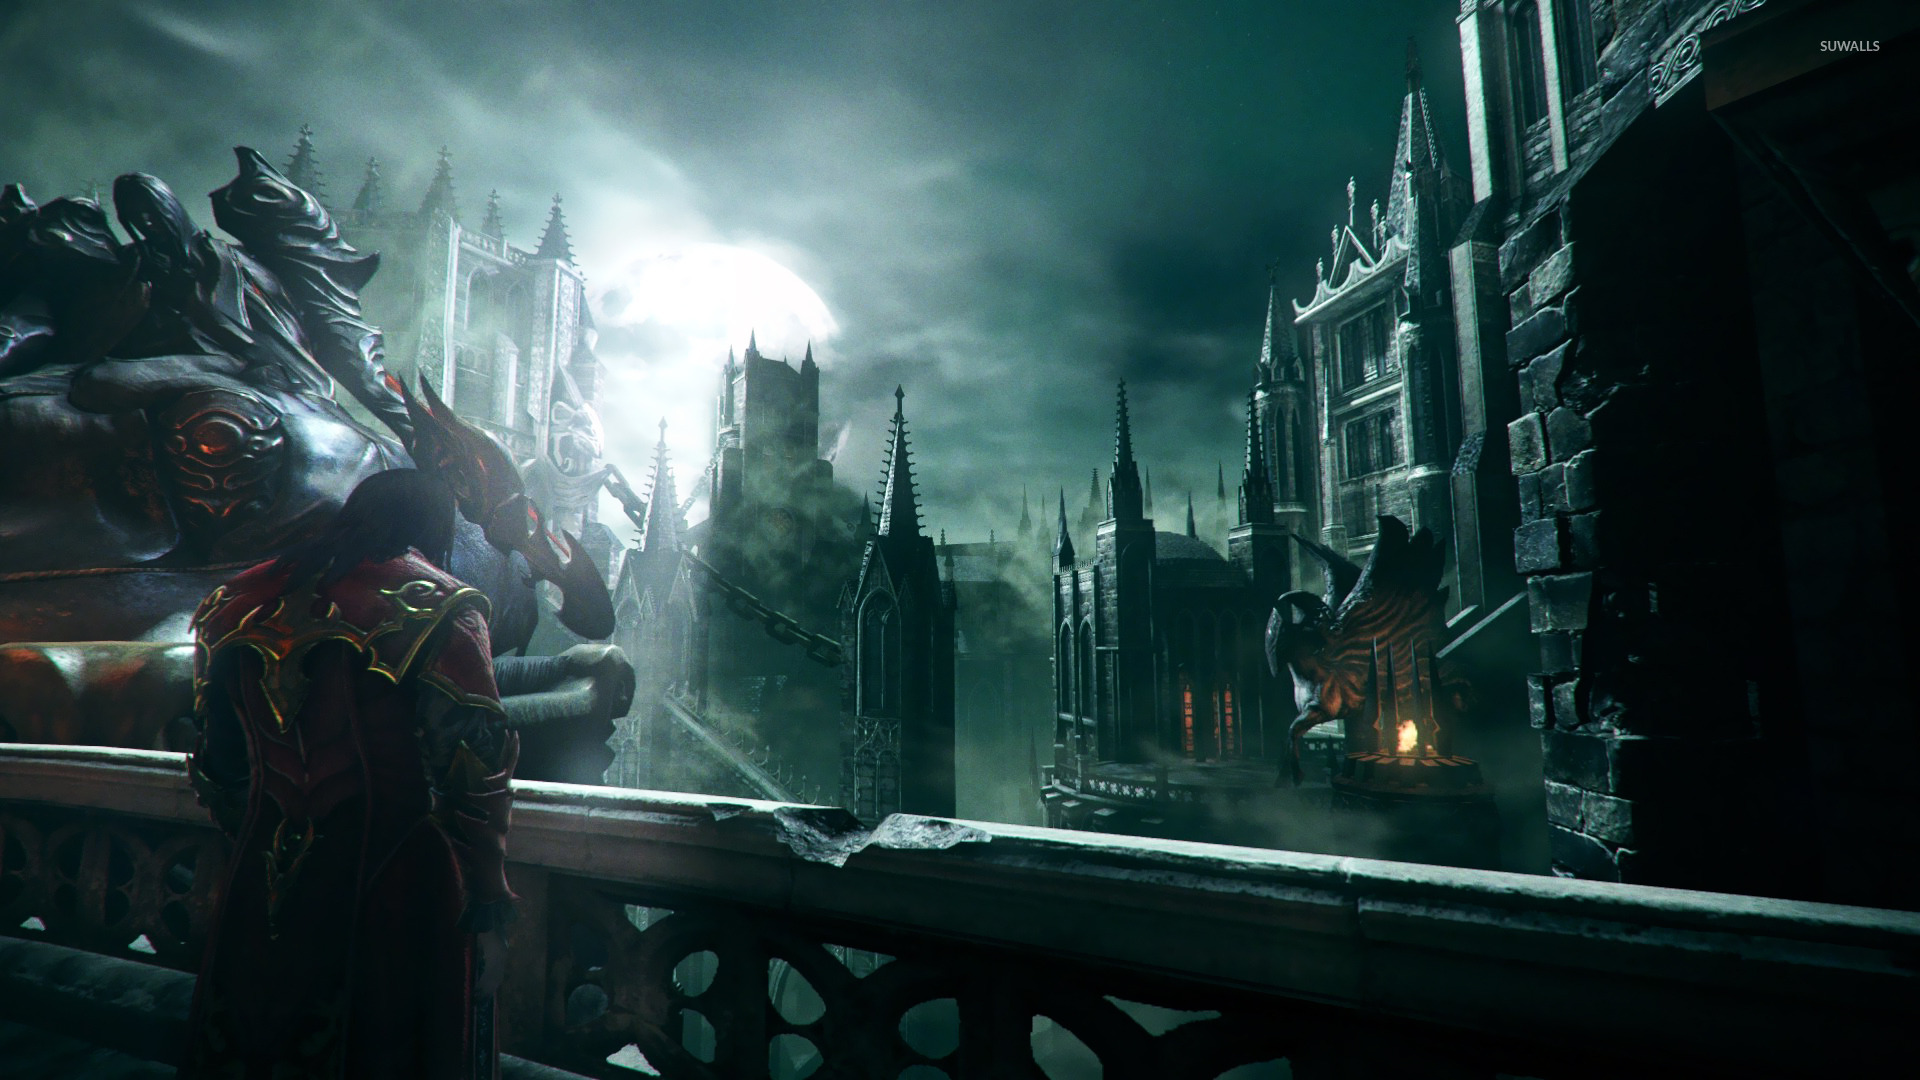 Download Wallpaper Lord Shadows - castlevania-lords-of-shadow-2-21385-1920x1080  Gallery_74415.jpg